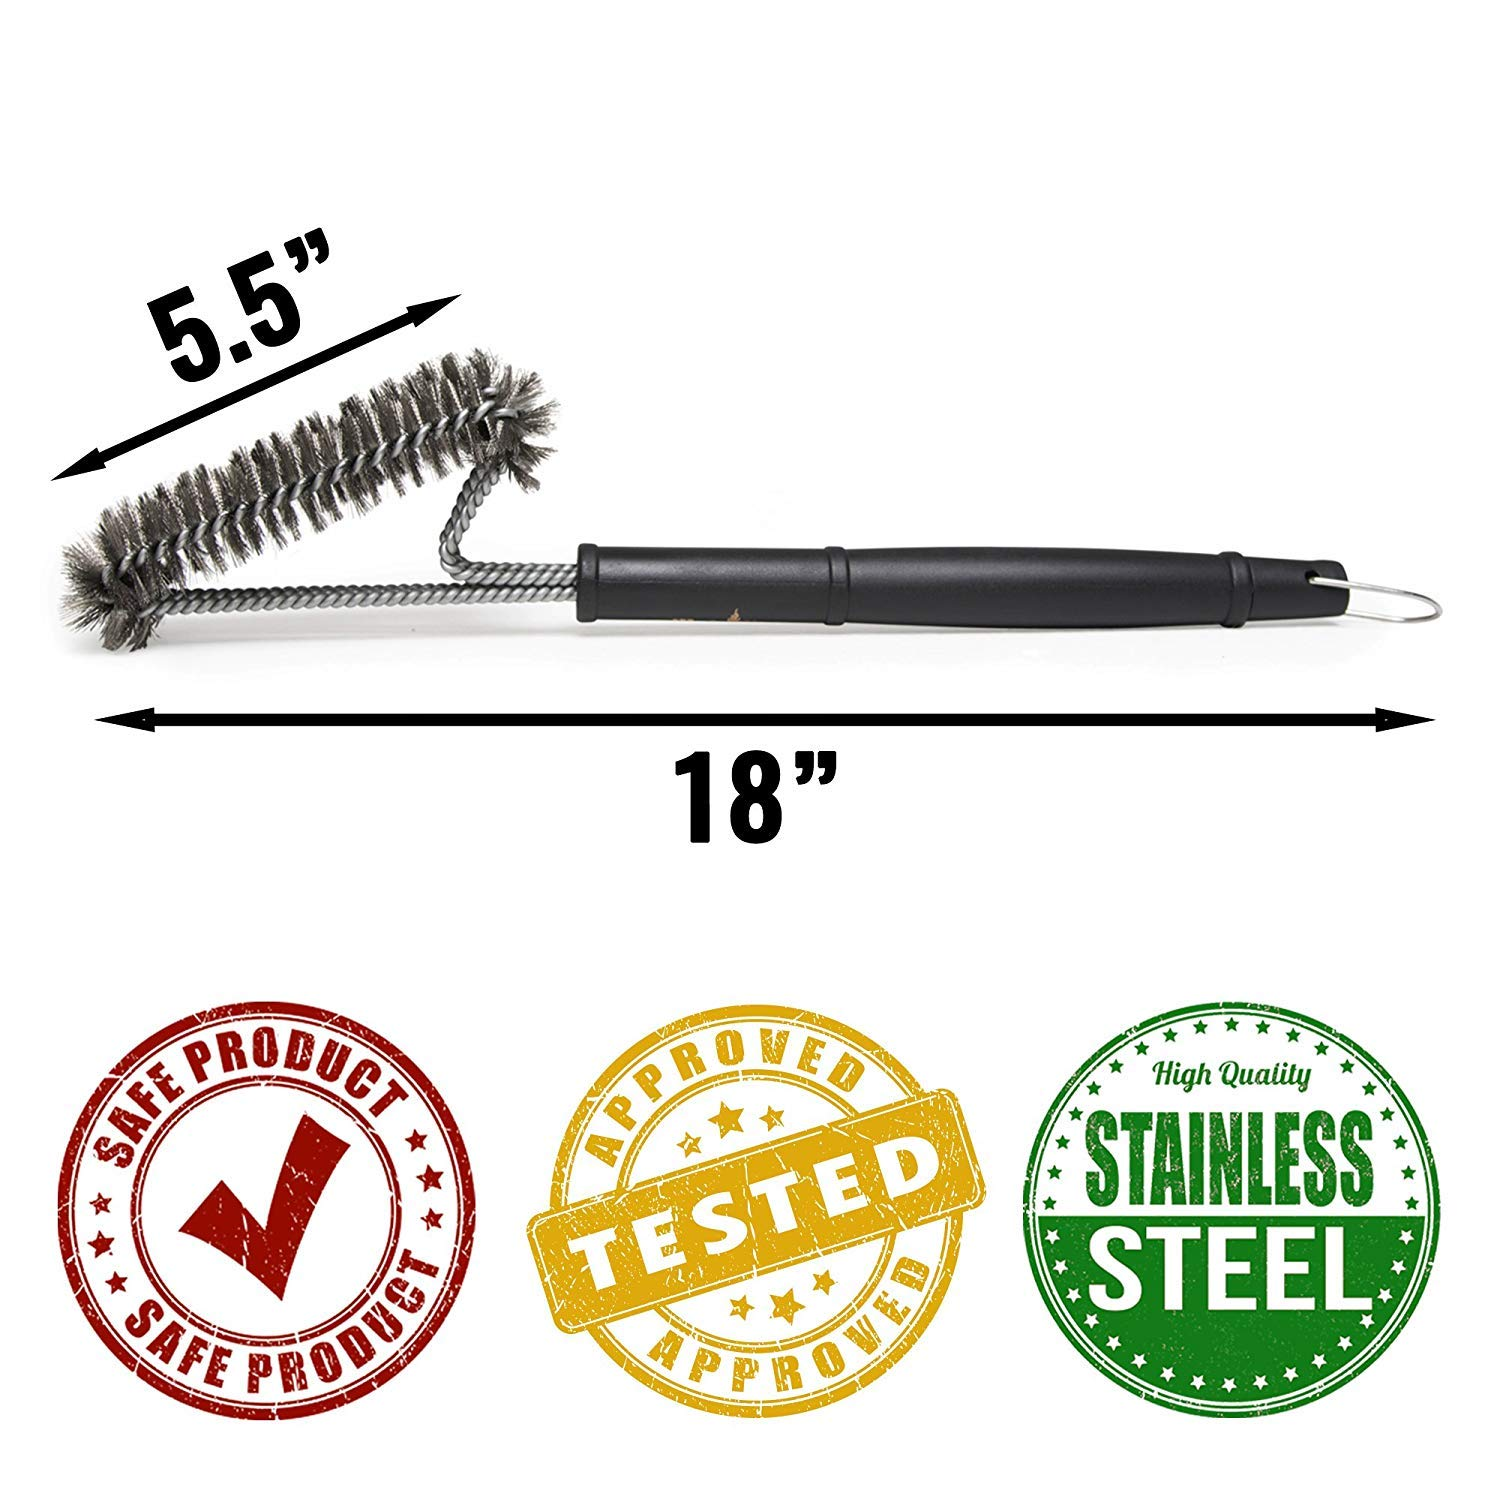 Grillaholics Essentials Brass Grill Brush Lifetime Manufacturers Warranty Softer Brass Bristle Wire Grill Brush for Safely Cleaning Porcelain and Ceramic Grates